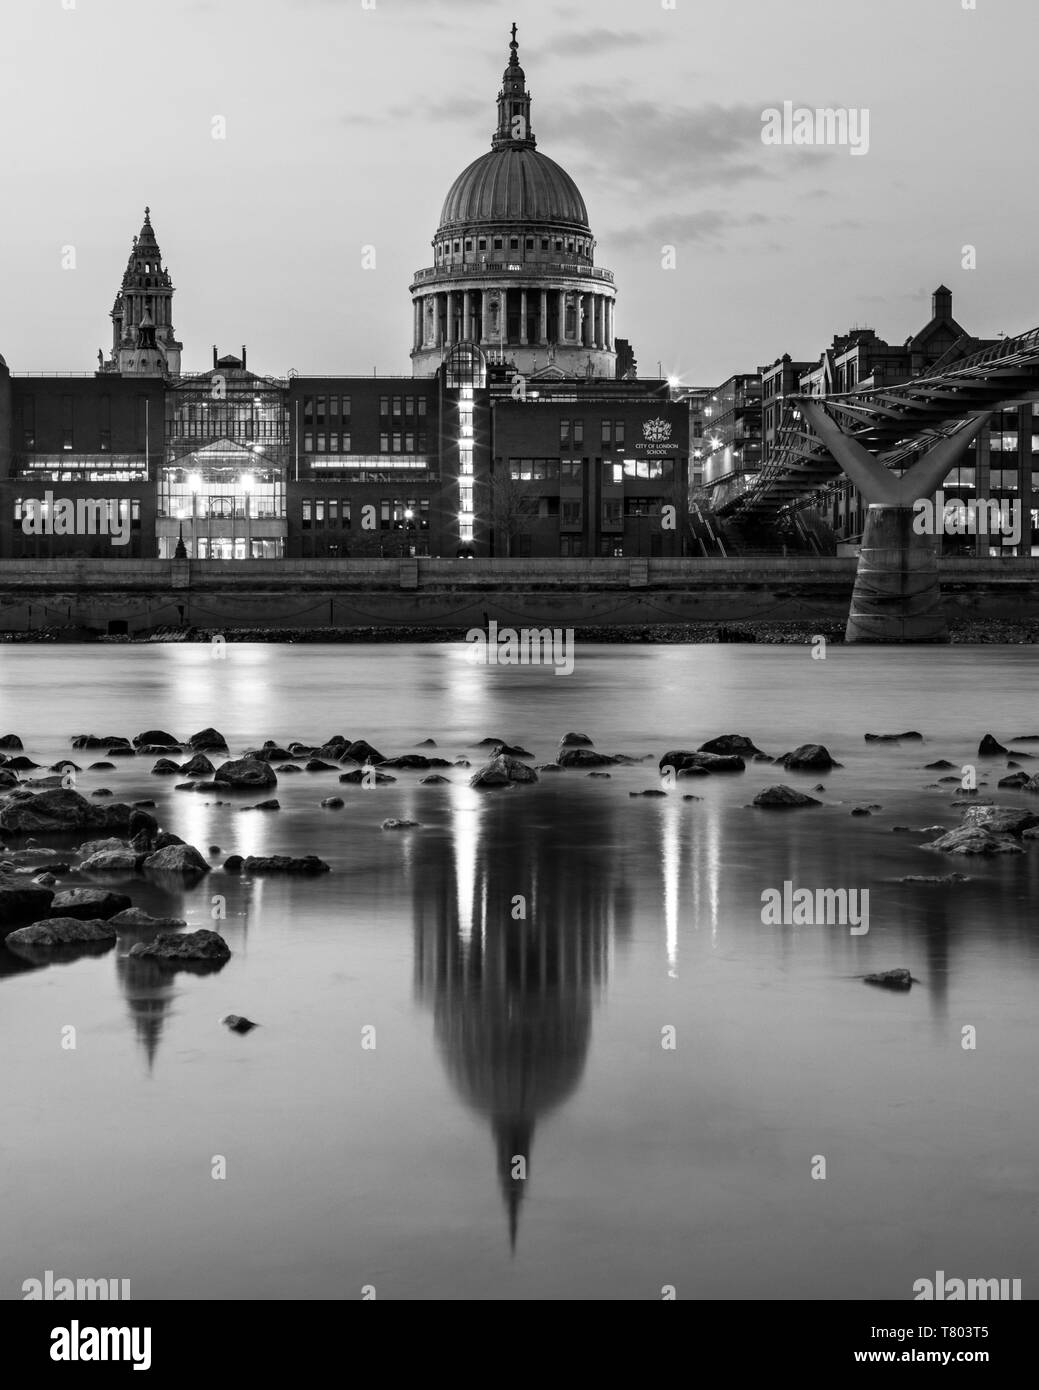 London, UK - April 1st 2019: A dusk-time view of the magnificent St. Pauls Cathedral and its reflection in the River Thames in London, UK. - Stock Image